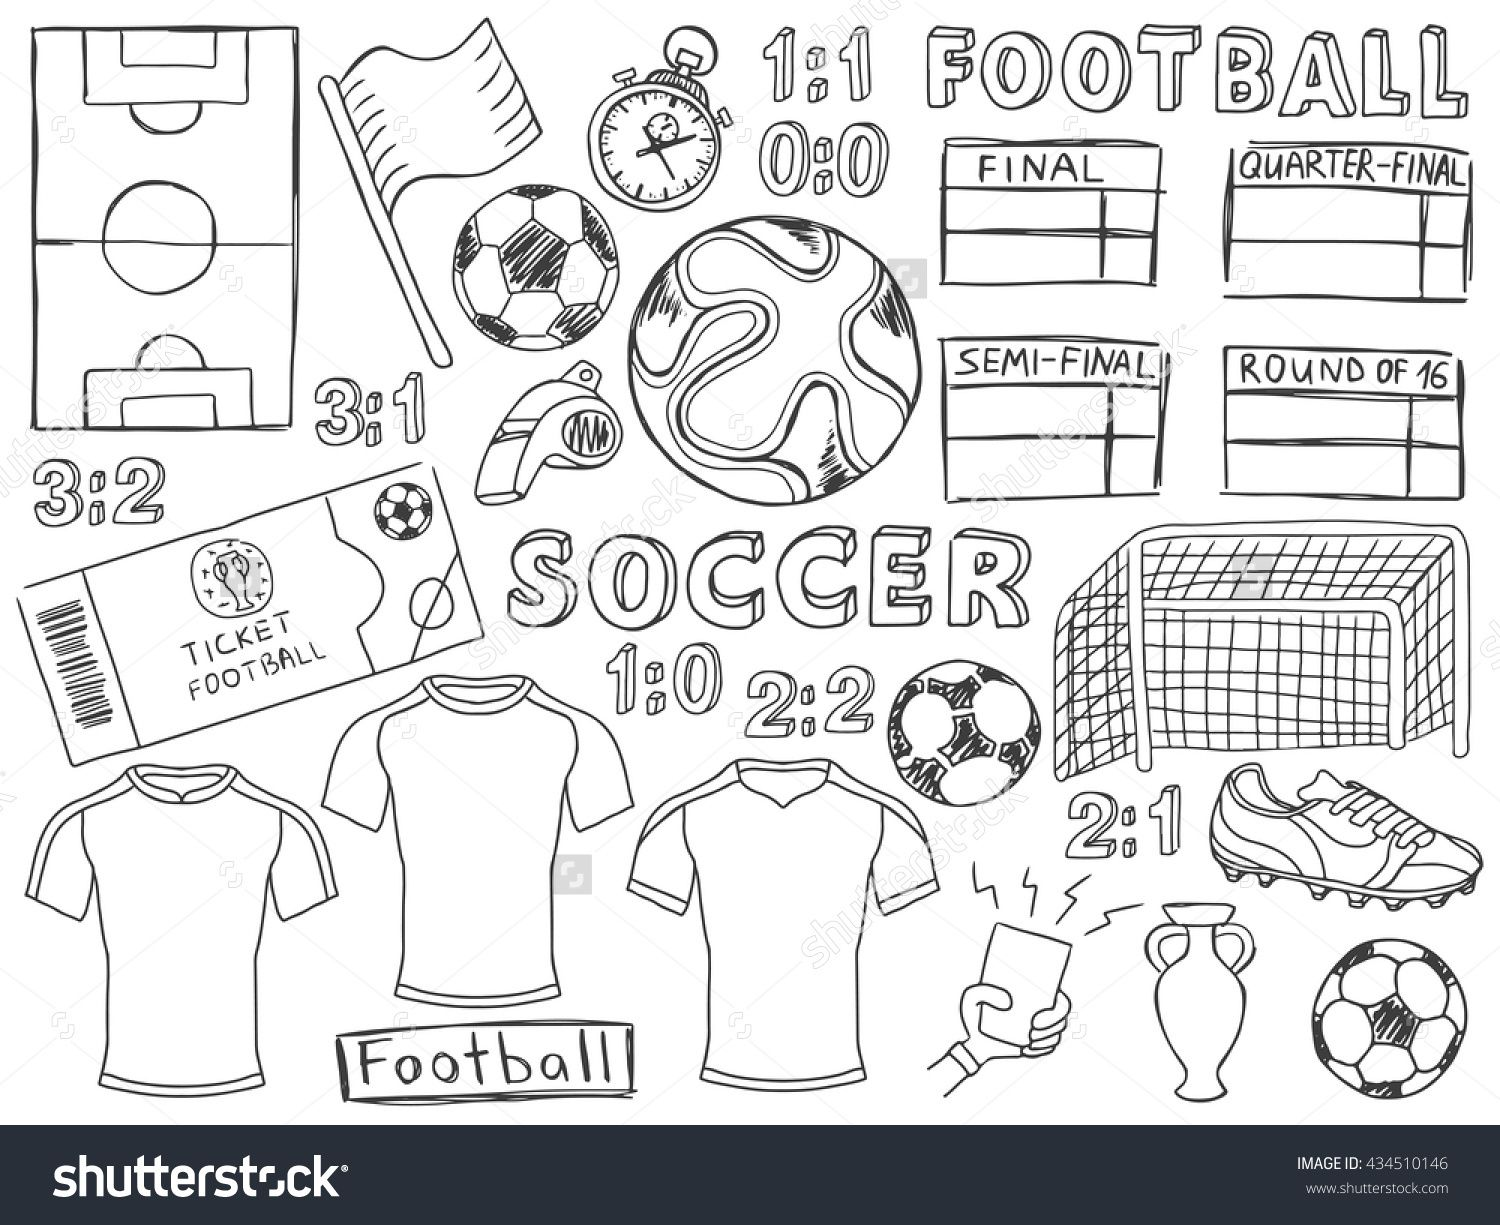 Pin By Andrea Gomez On Soccer Football Doodle Bullet Journal Doodles Bullet Journal Themes